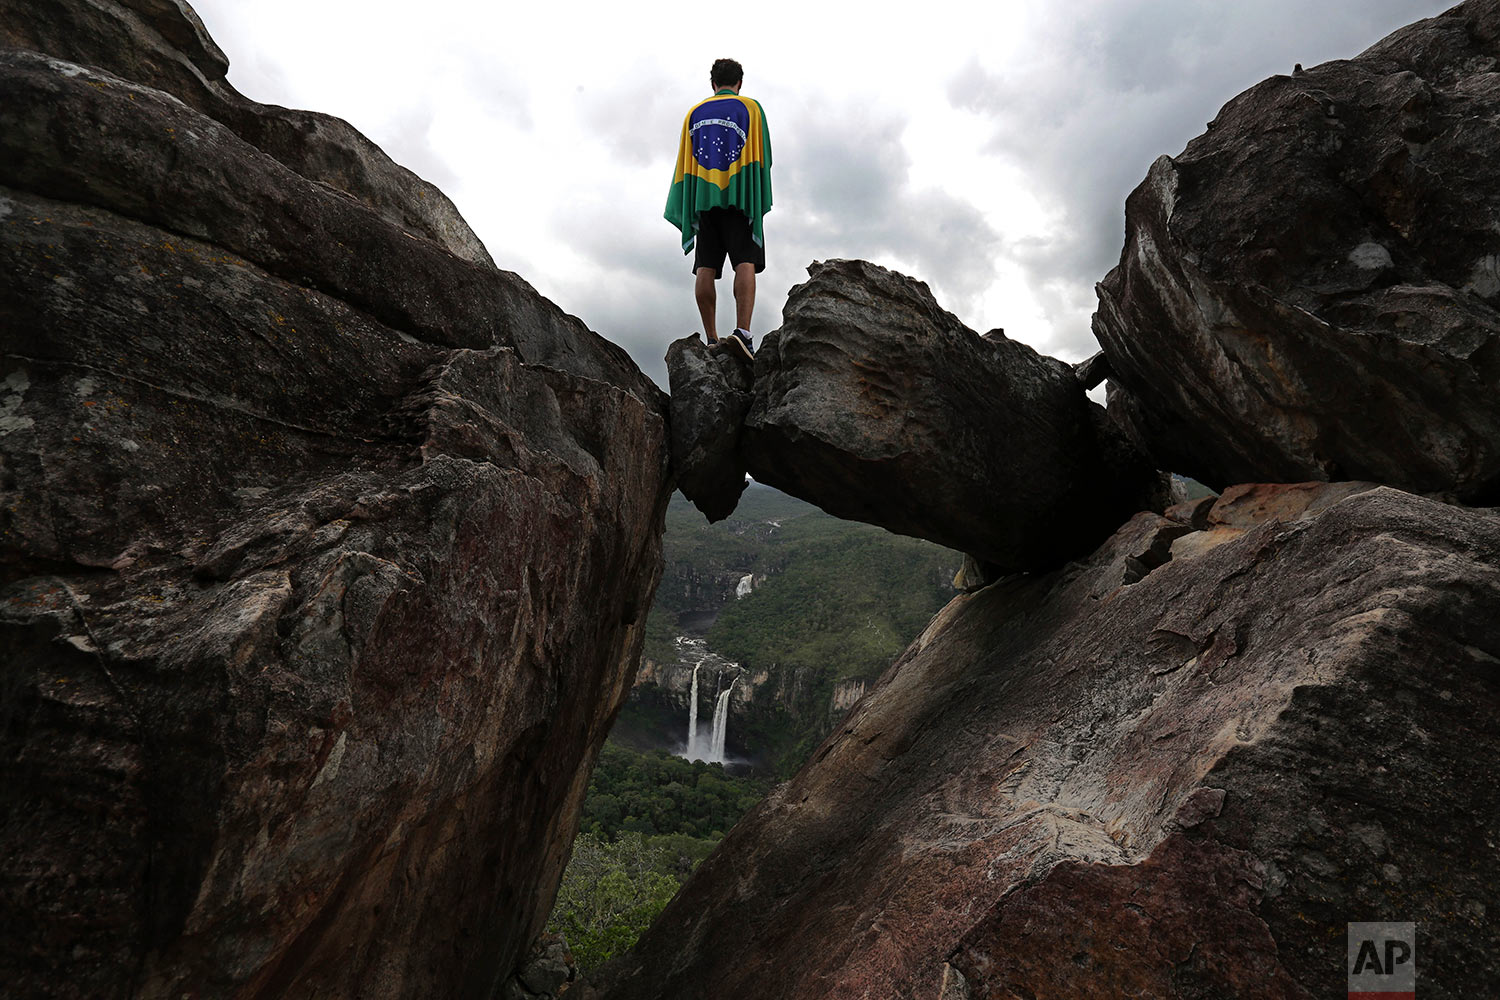 A park visitor wrapped in a Brazilian flag stands above a naturally forming window known as The Leap from Garimpo and looks out at the Salto do Rio Preto waterfall in Chapada dos Veadeiros National Park in Alto Paraiso, Goias state, Brazil, March 17, 2018. The nature reserve is recognized as one of country's main water cradles, and responsible for the formation of the Amazon basin, with springs that form the Tocantins River. Brazil will host the 8th World Water Forum starting Monday,  March 19. (AP Photo/Eraldo Peres)